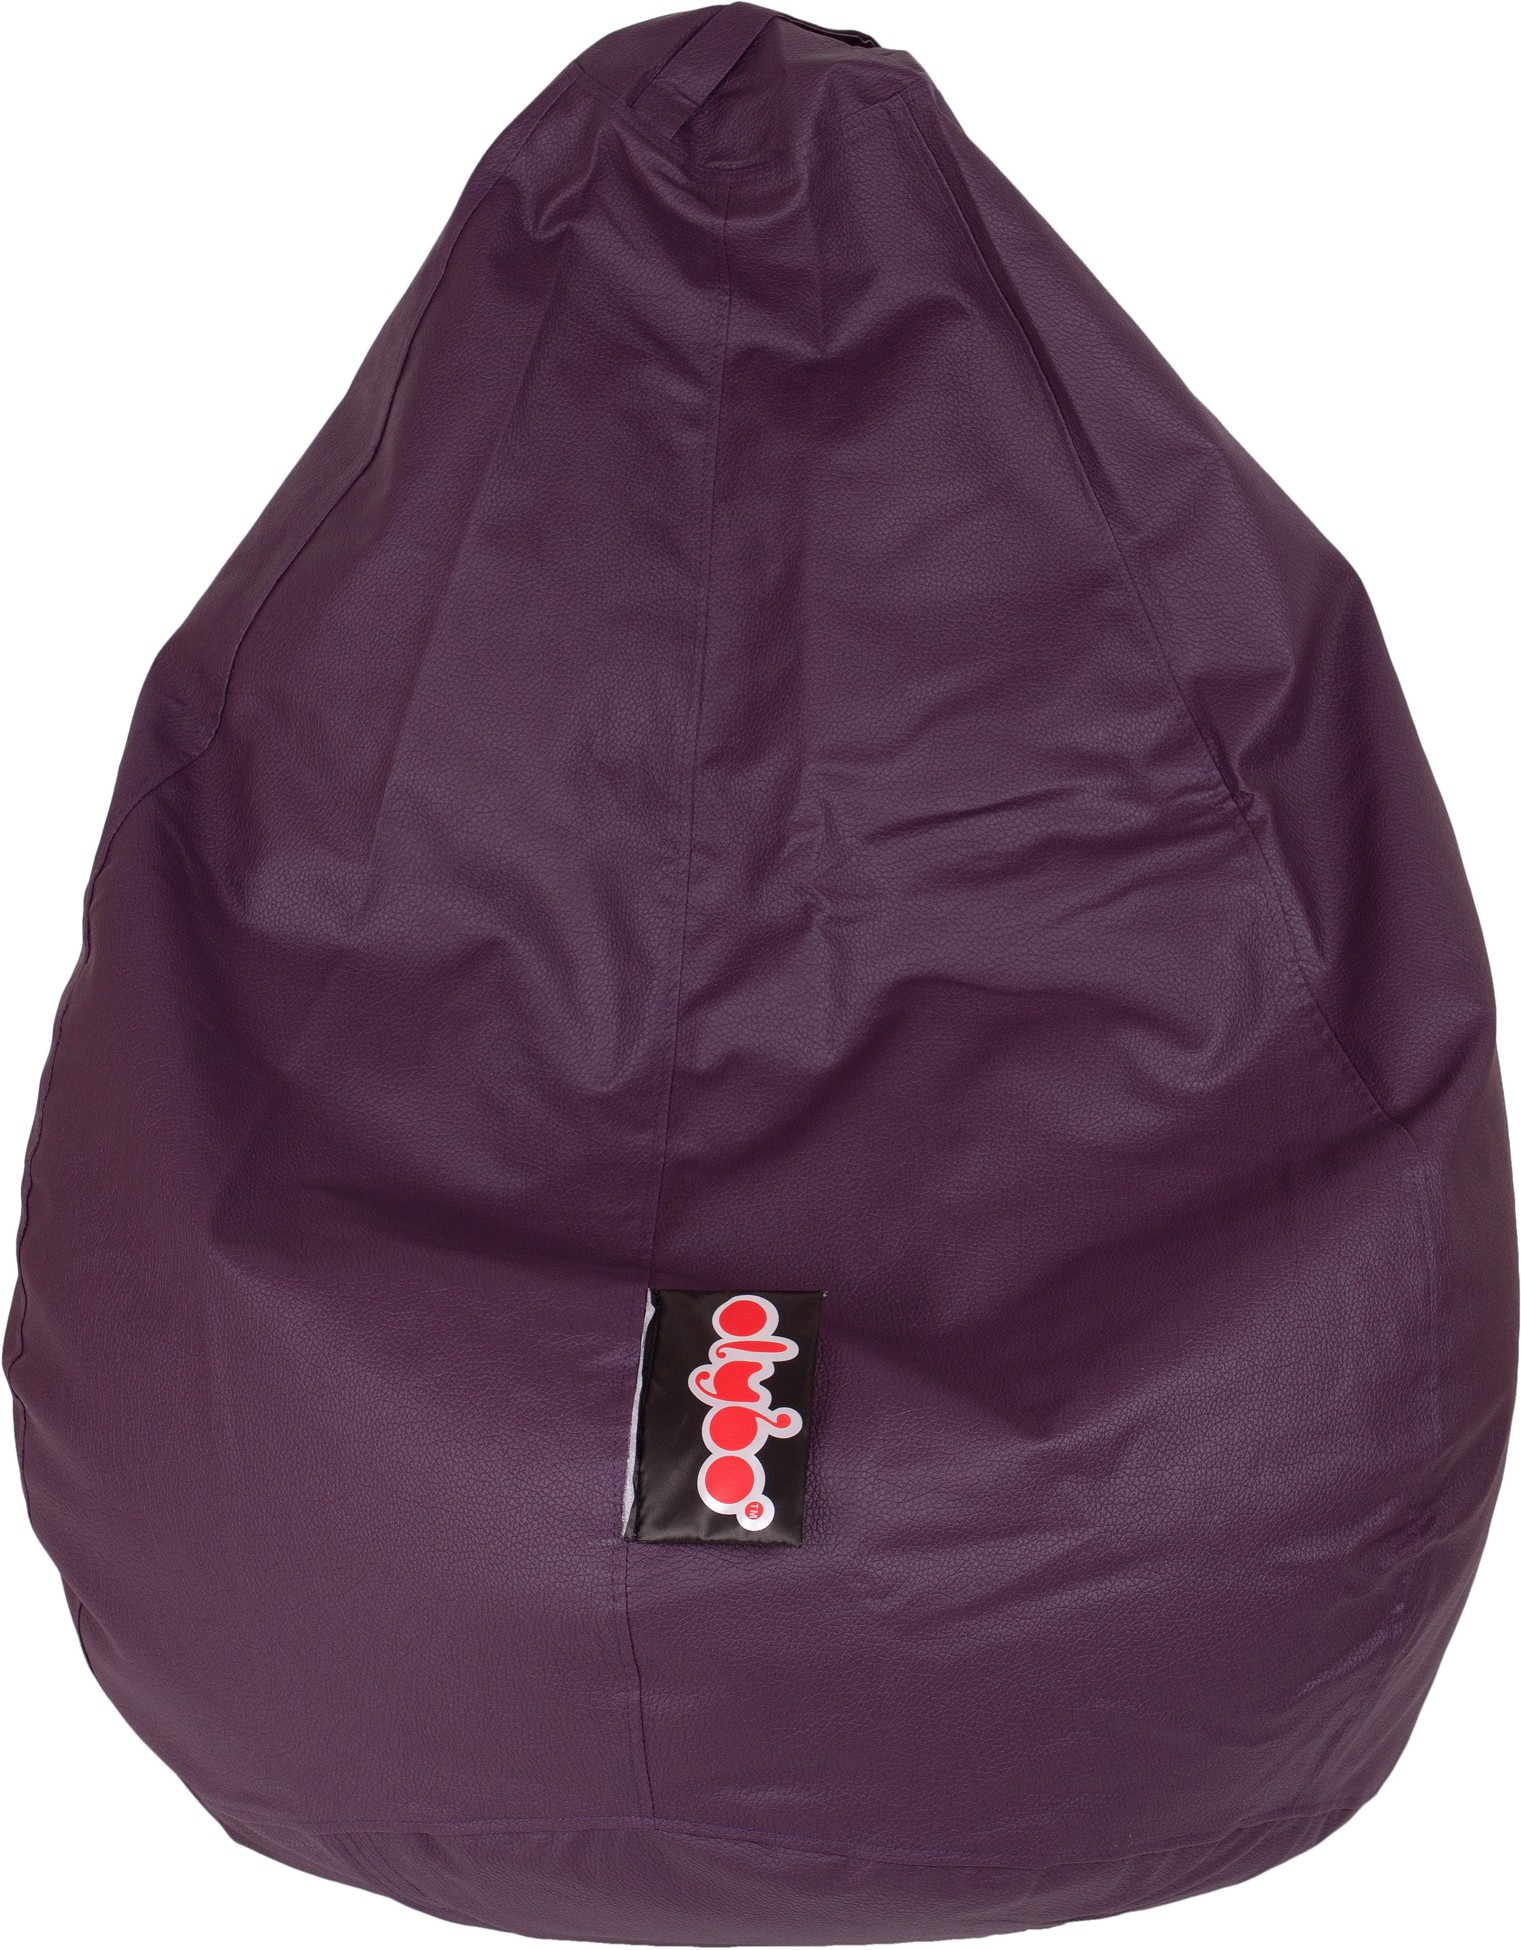 View Olybo XXL Bean Bag Cover(Purple) Furniture (Olybo)